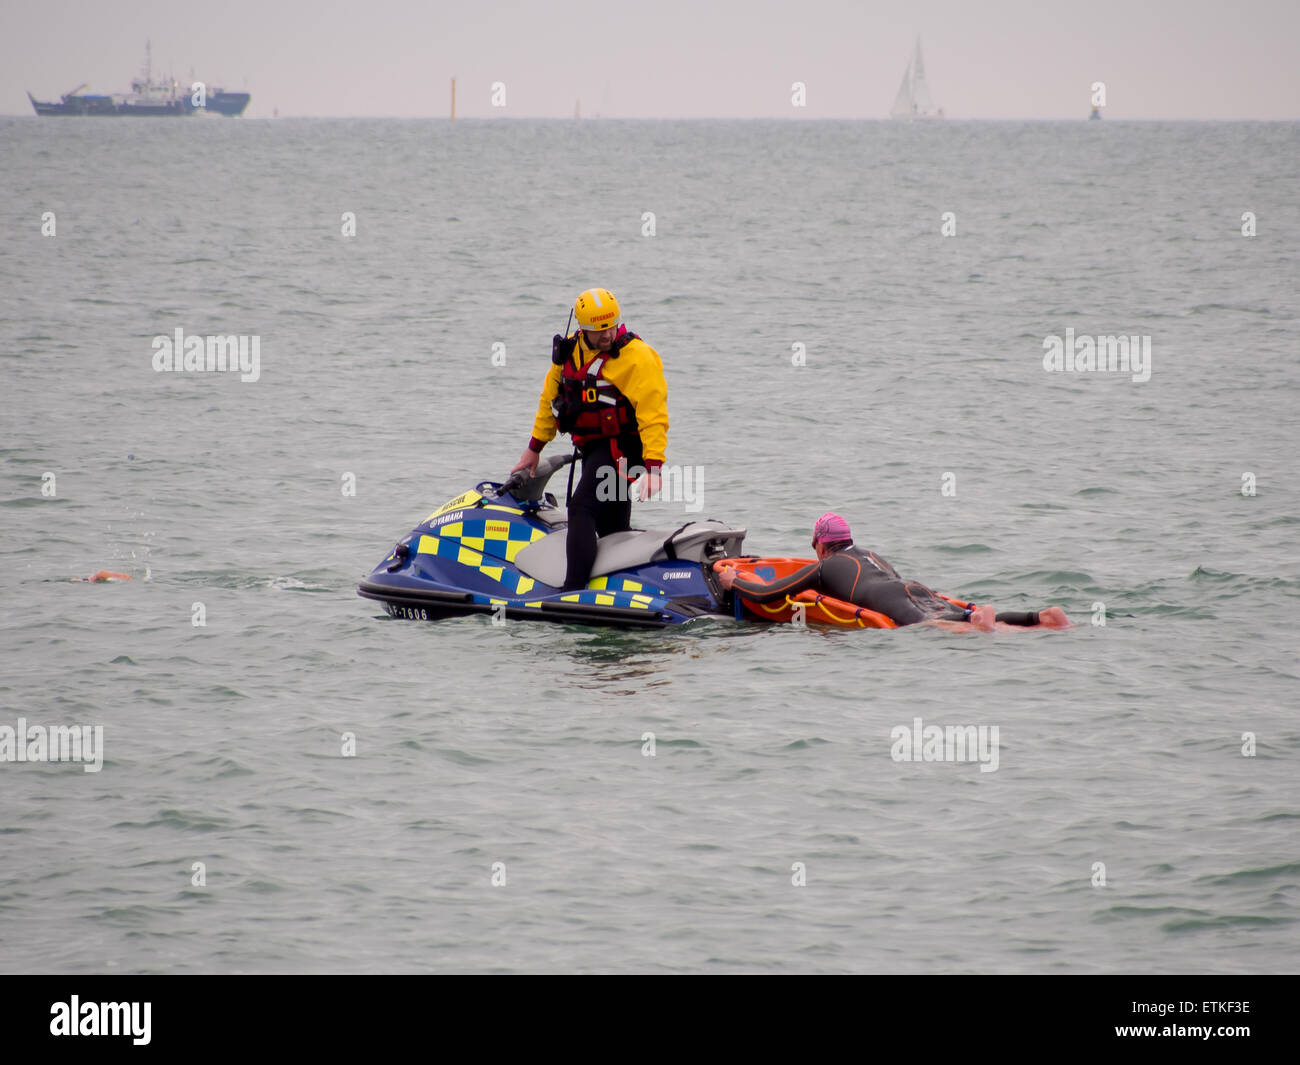 A lifeguard on a jetski assists a swimmer that is in difficulty, during a triathlon event in the Solent - Stock Image